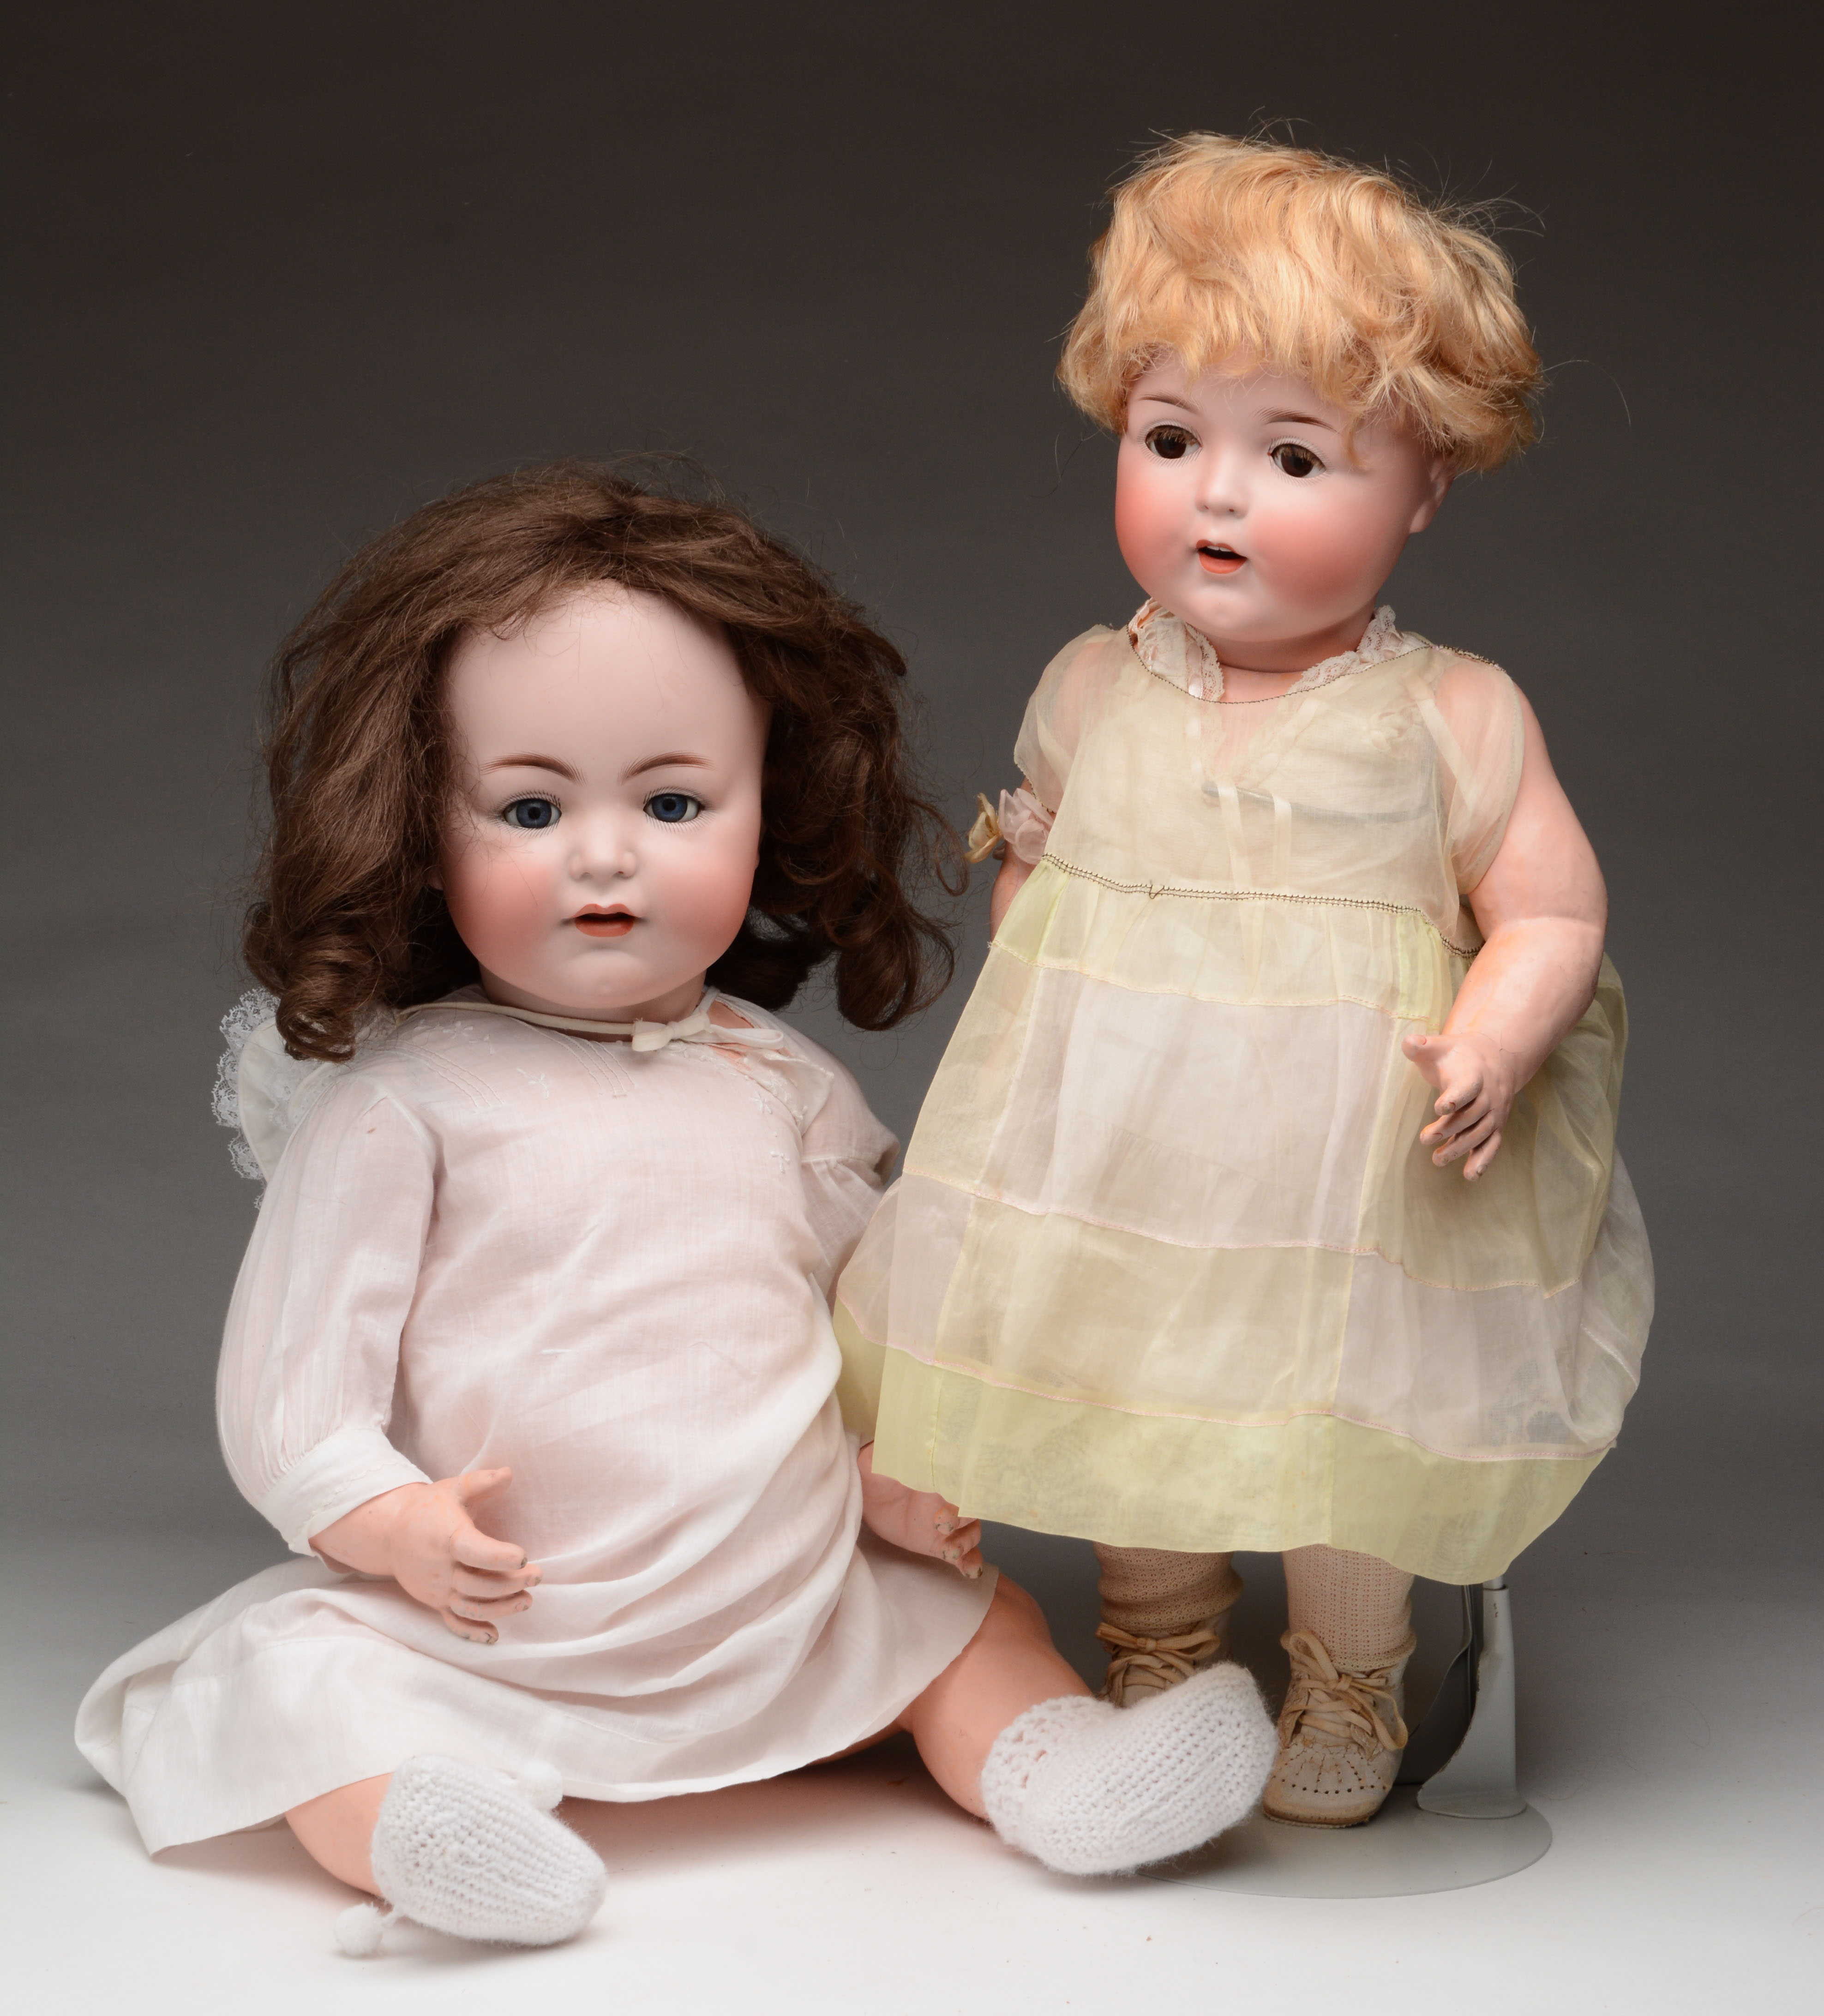 Lot of 2: Large Bisque Head Babies.